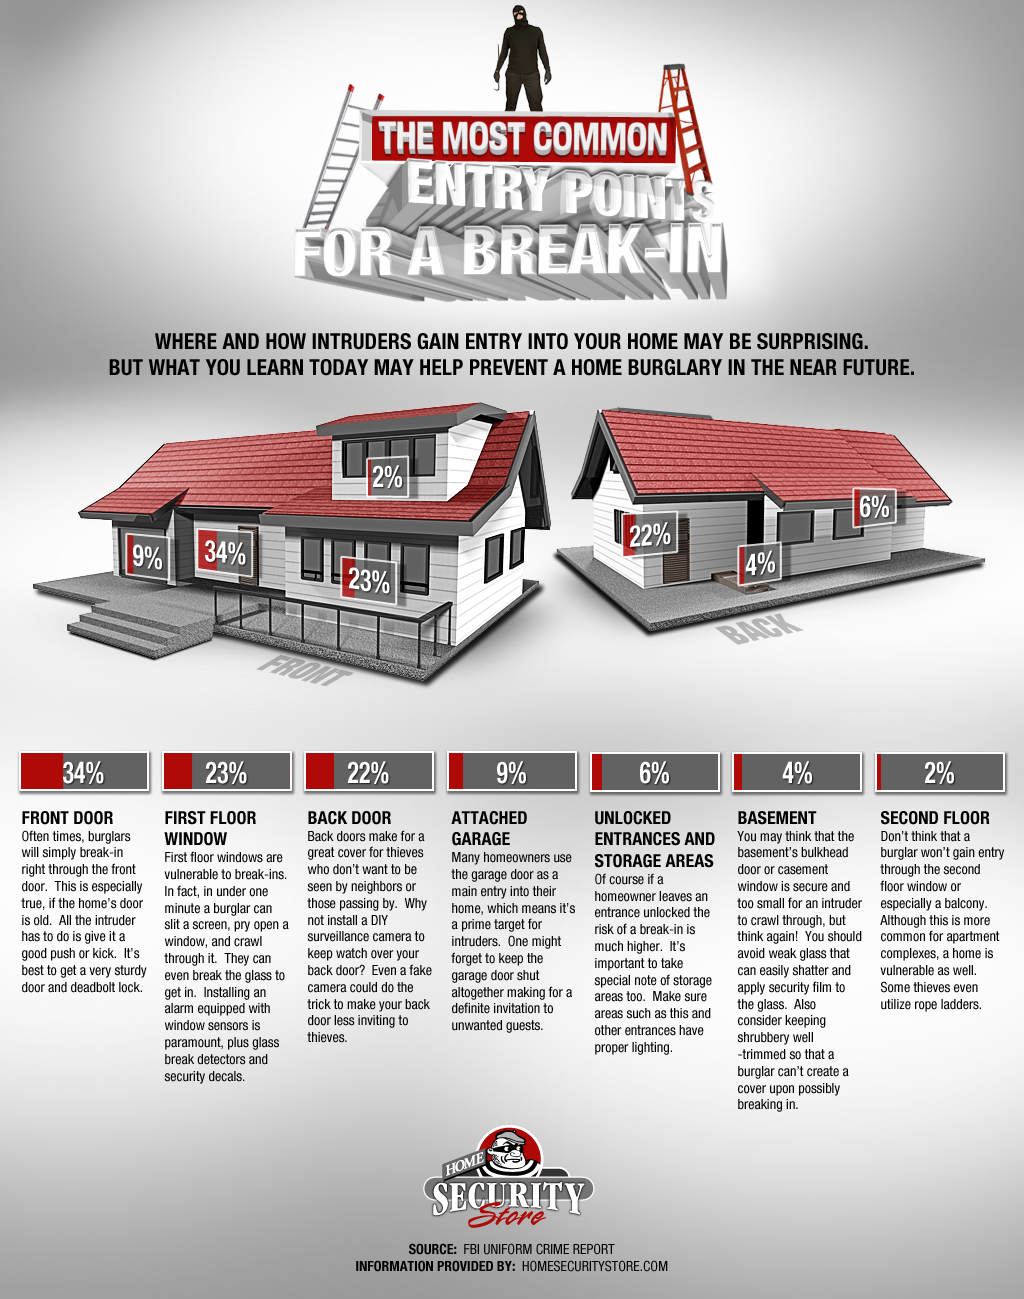 9 Alarming Stats You Need To Know About Home Break-Ins